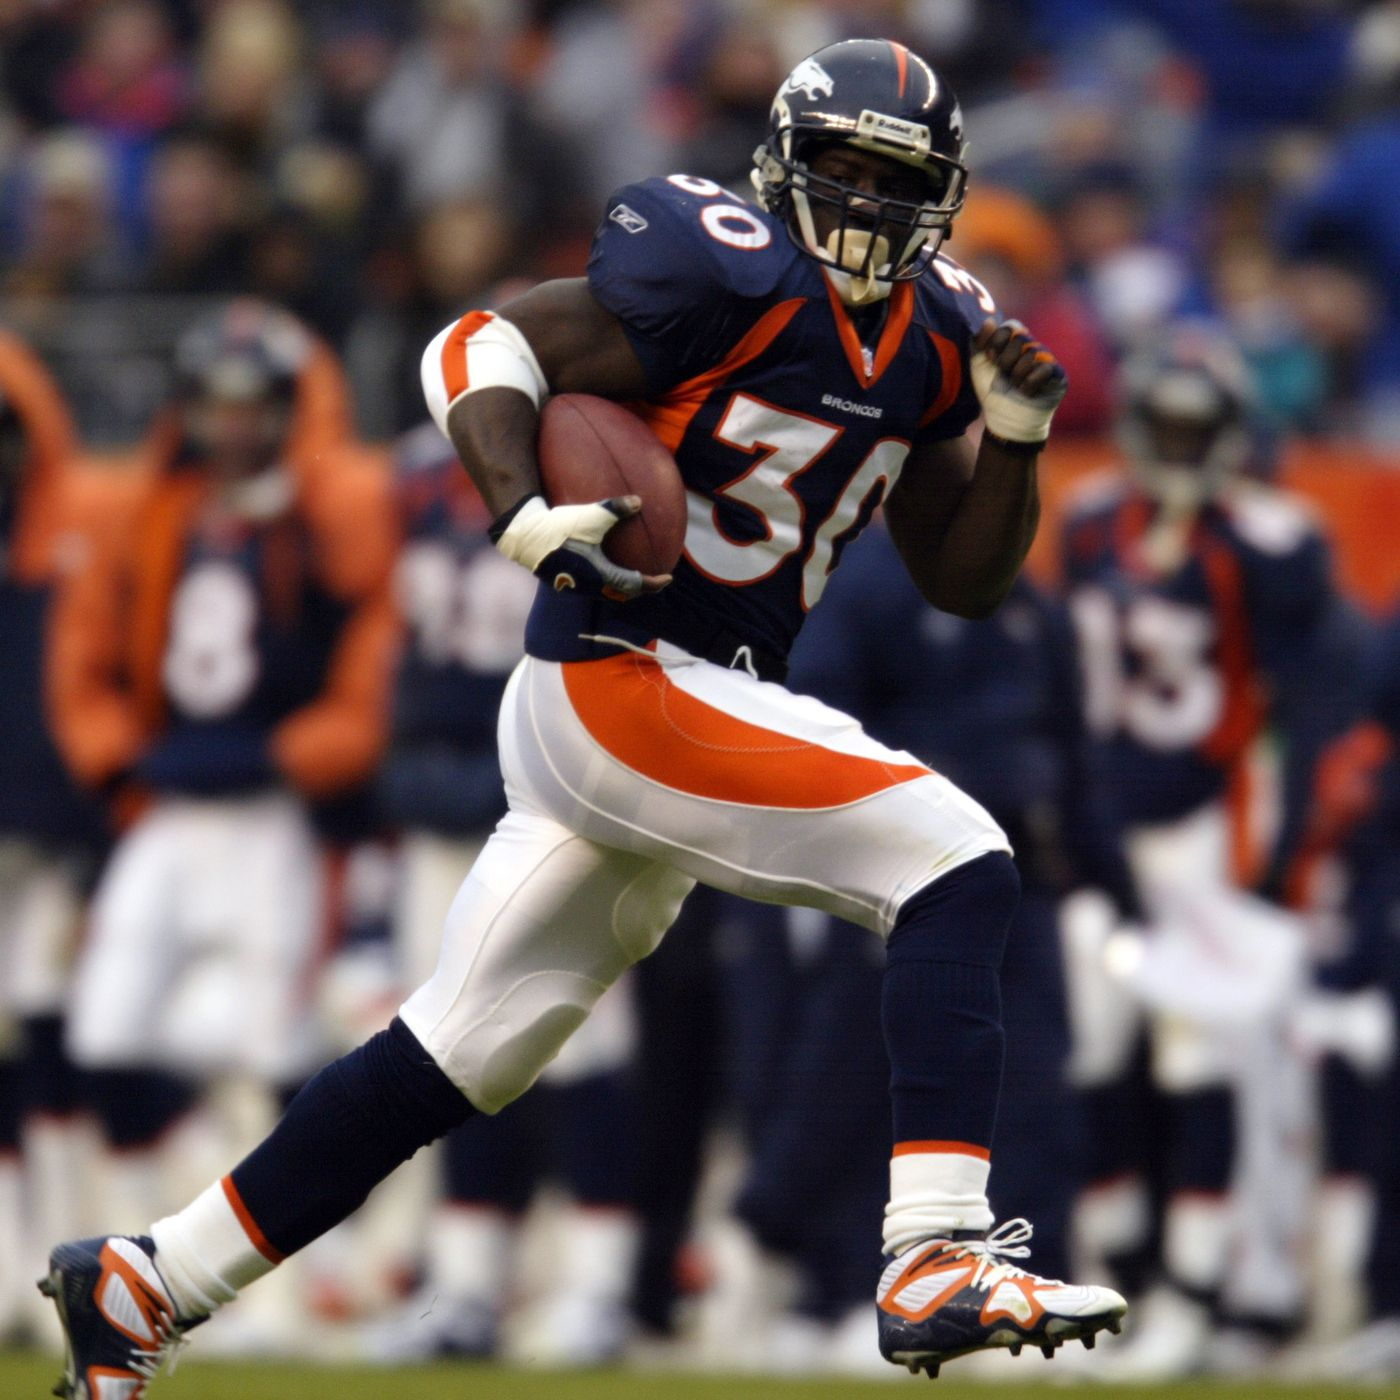 e2647b2b5 Terrell Davis is the greatest playoff running back of all-time ...